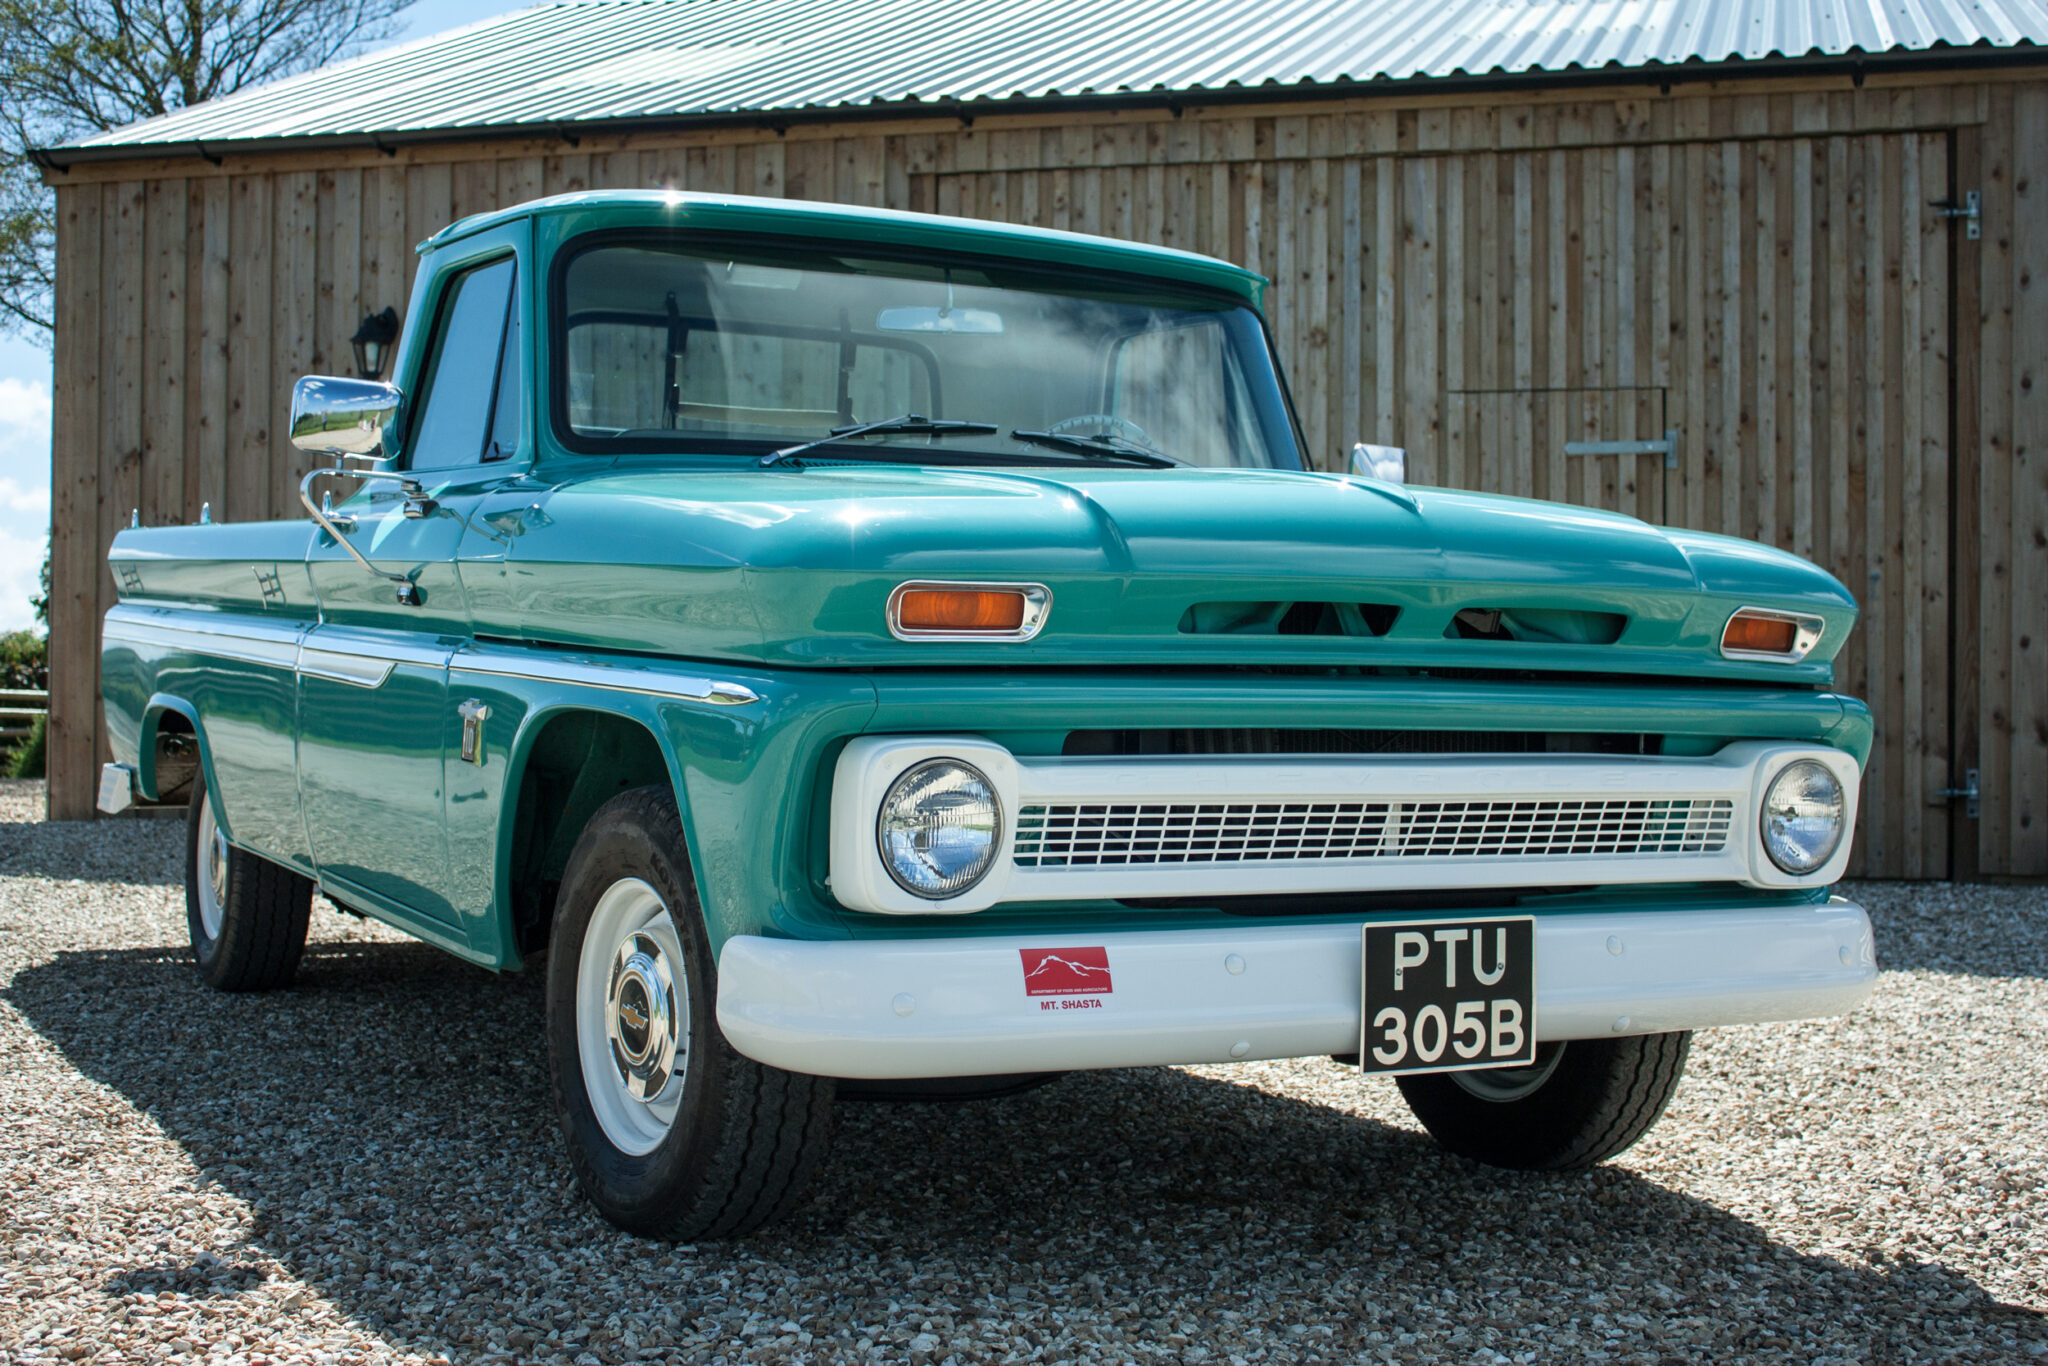 Vintage Chevrolet Truck custom rebuild by RHM Bodyshop, Launceston Cornwall